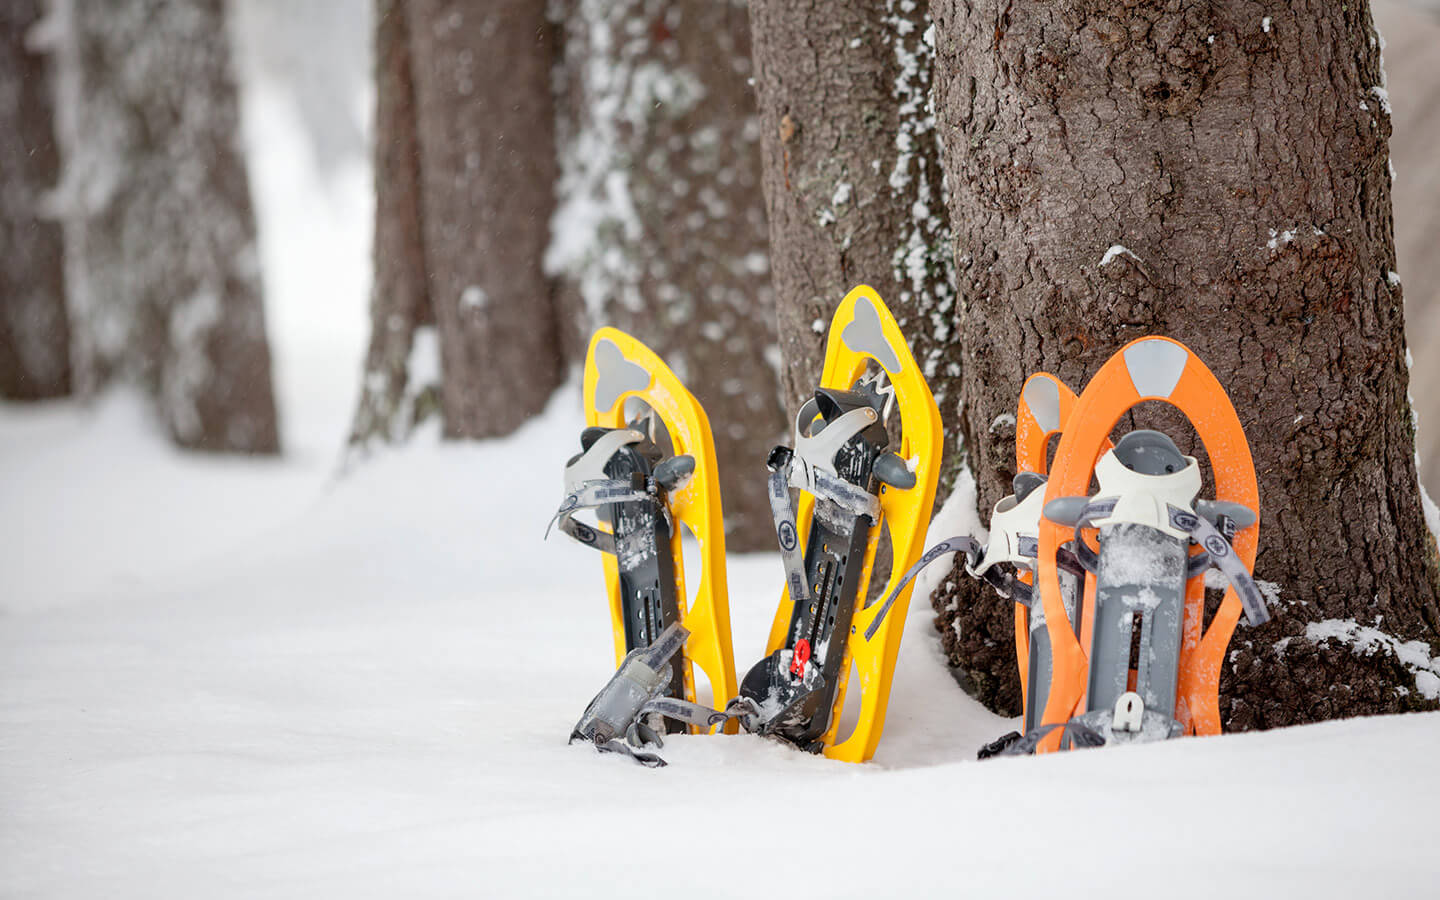 Snowshoes sitting in snow next to tree